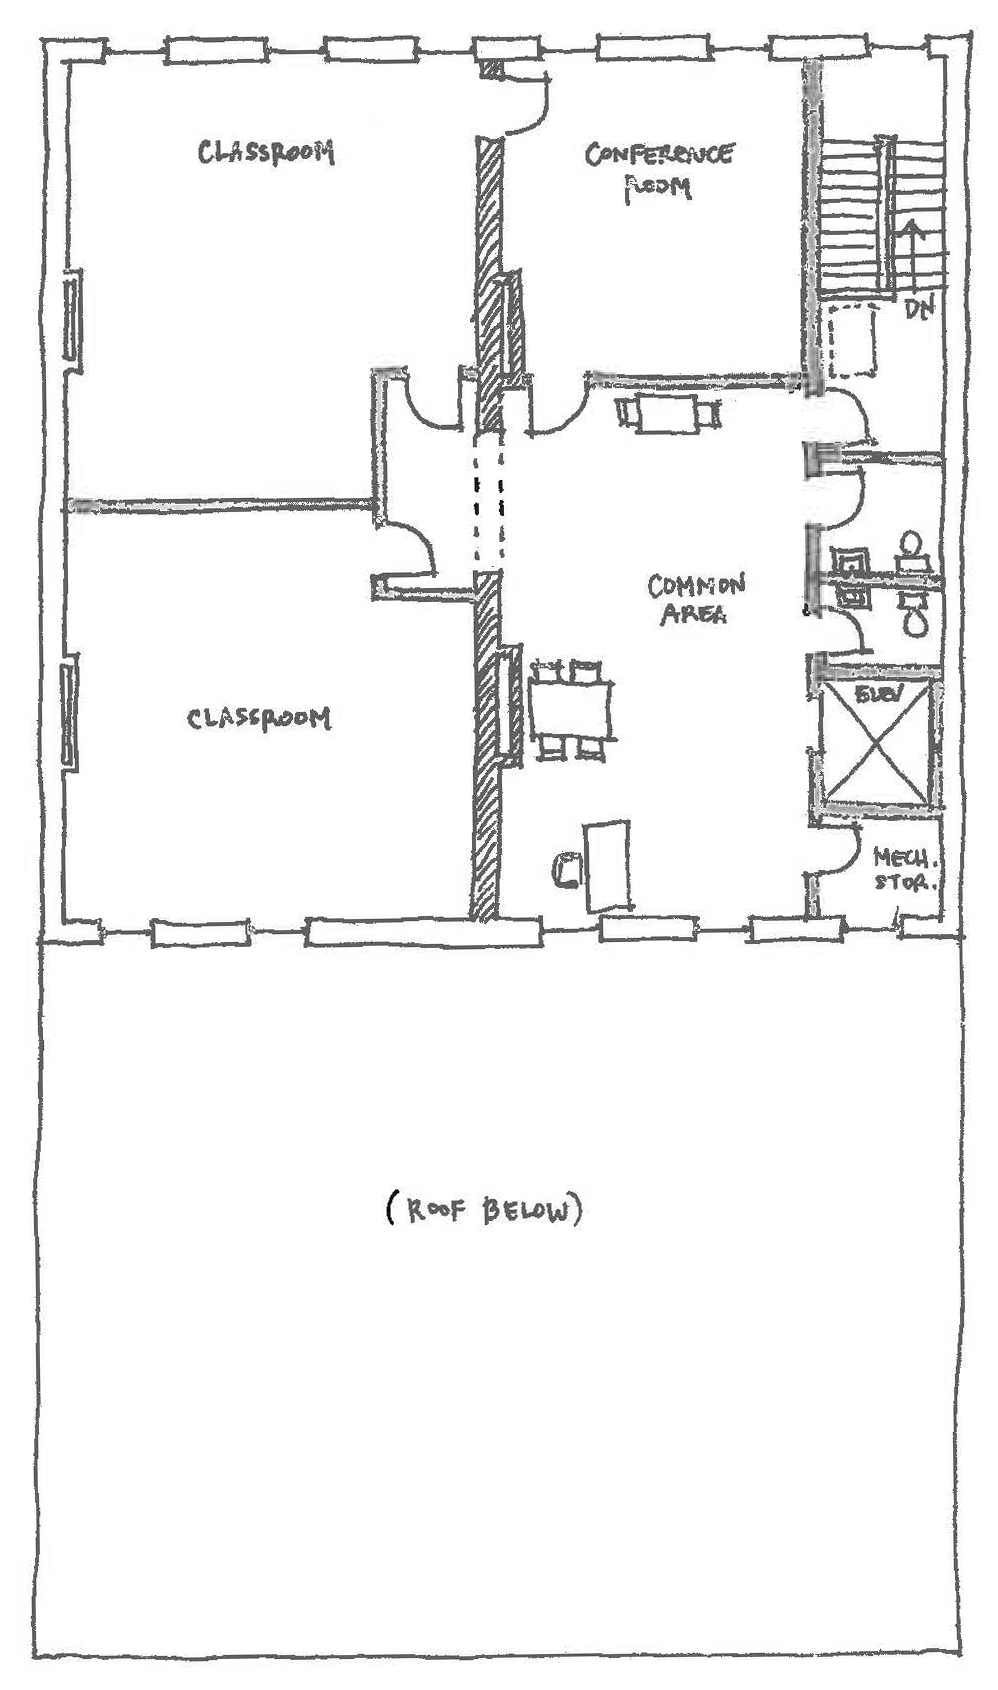 Third floor drawing plans by LS3P